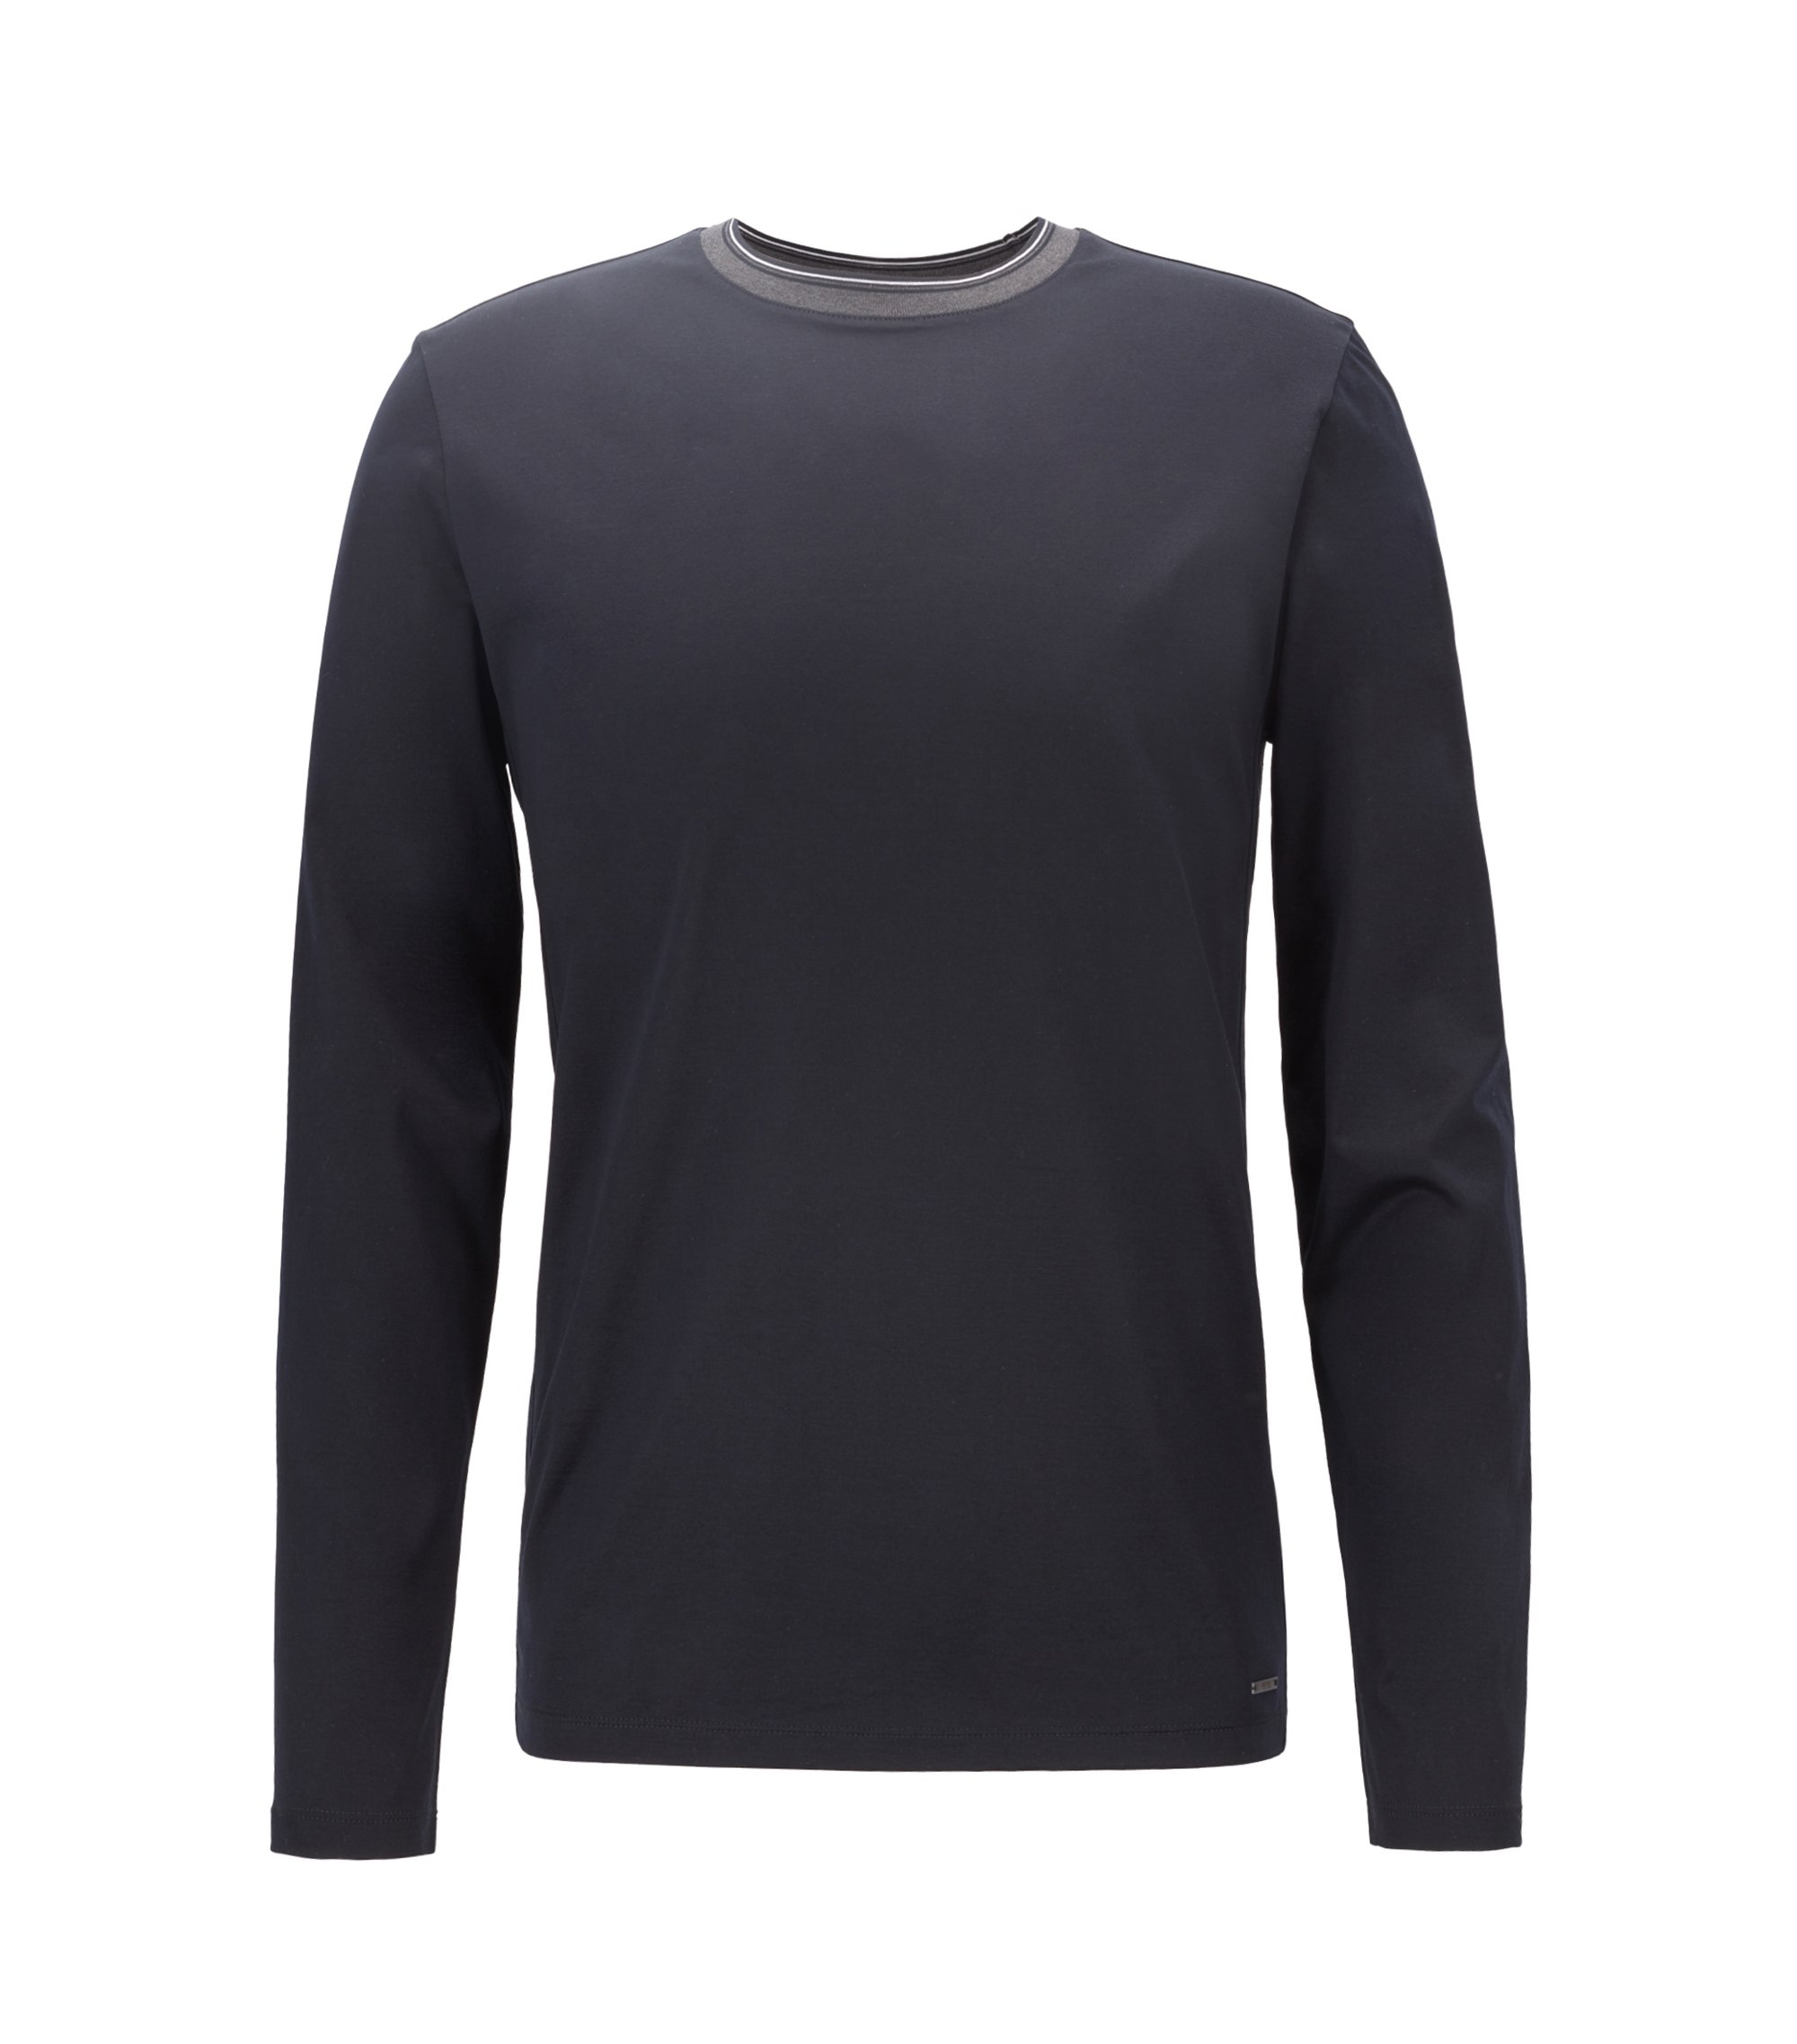 Long-sleeved T-shirt in mercerized cotton with striped neckline, Black